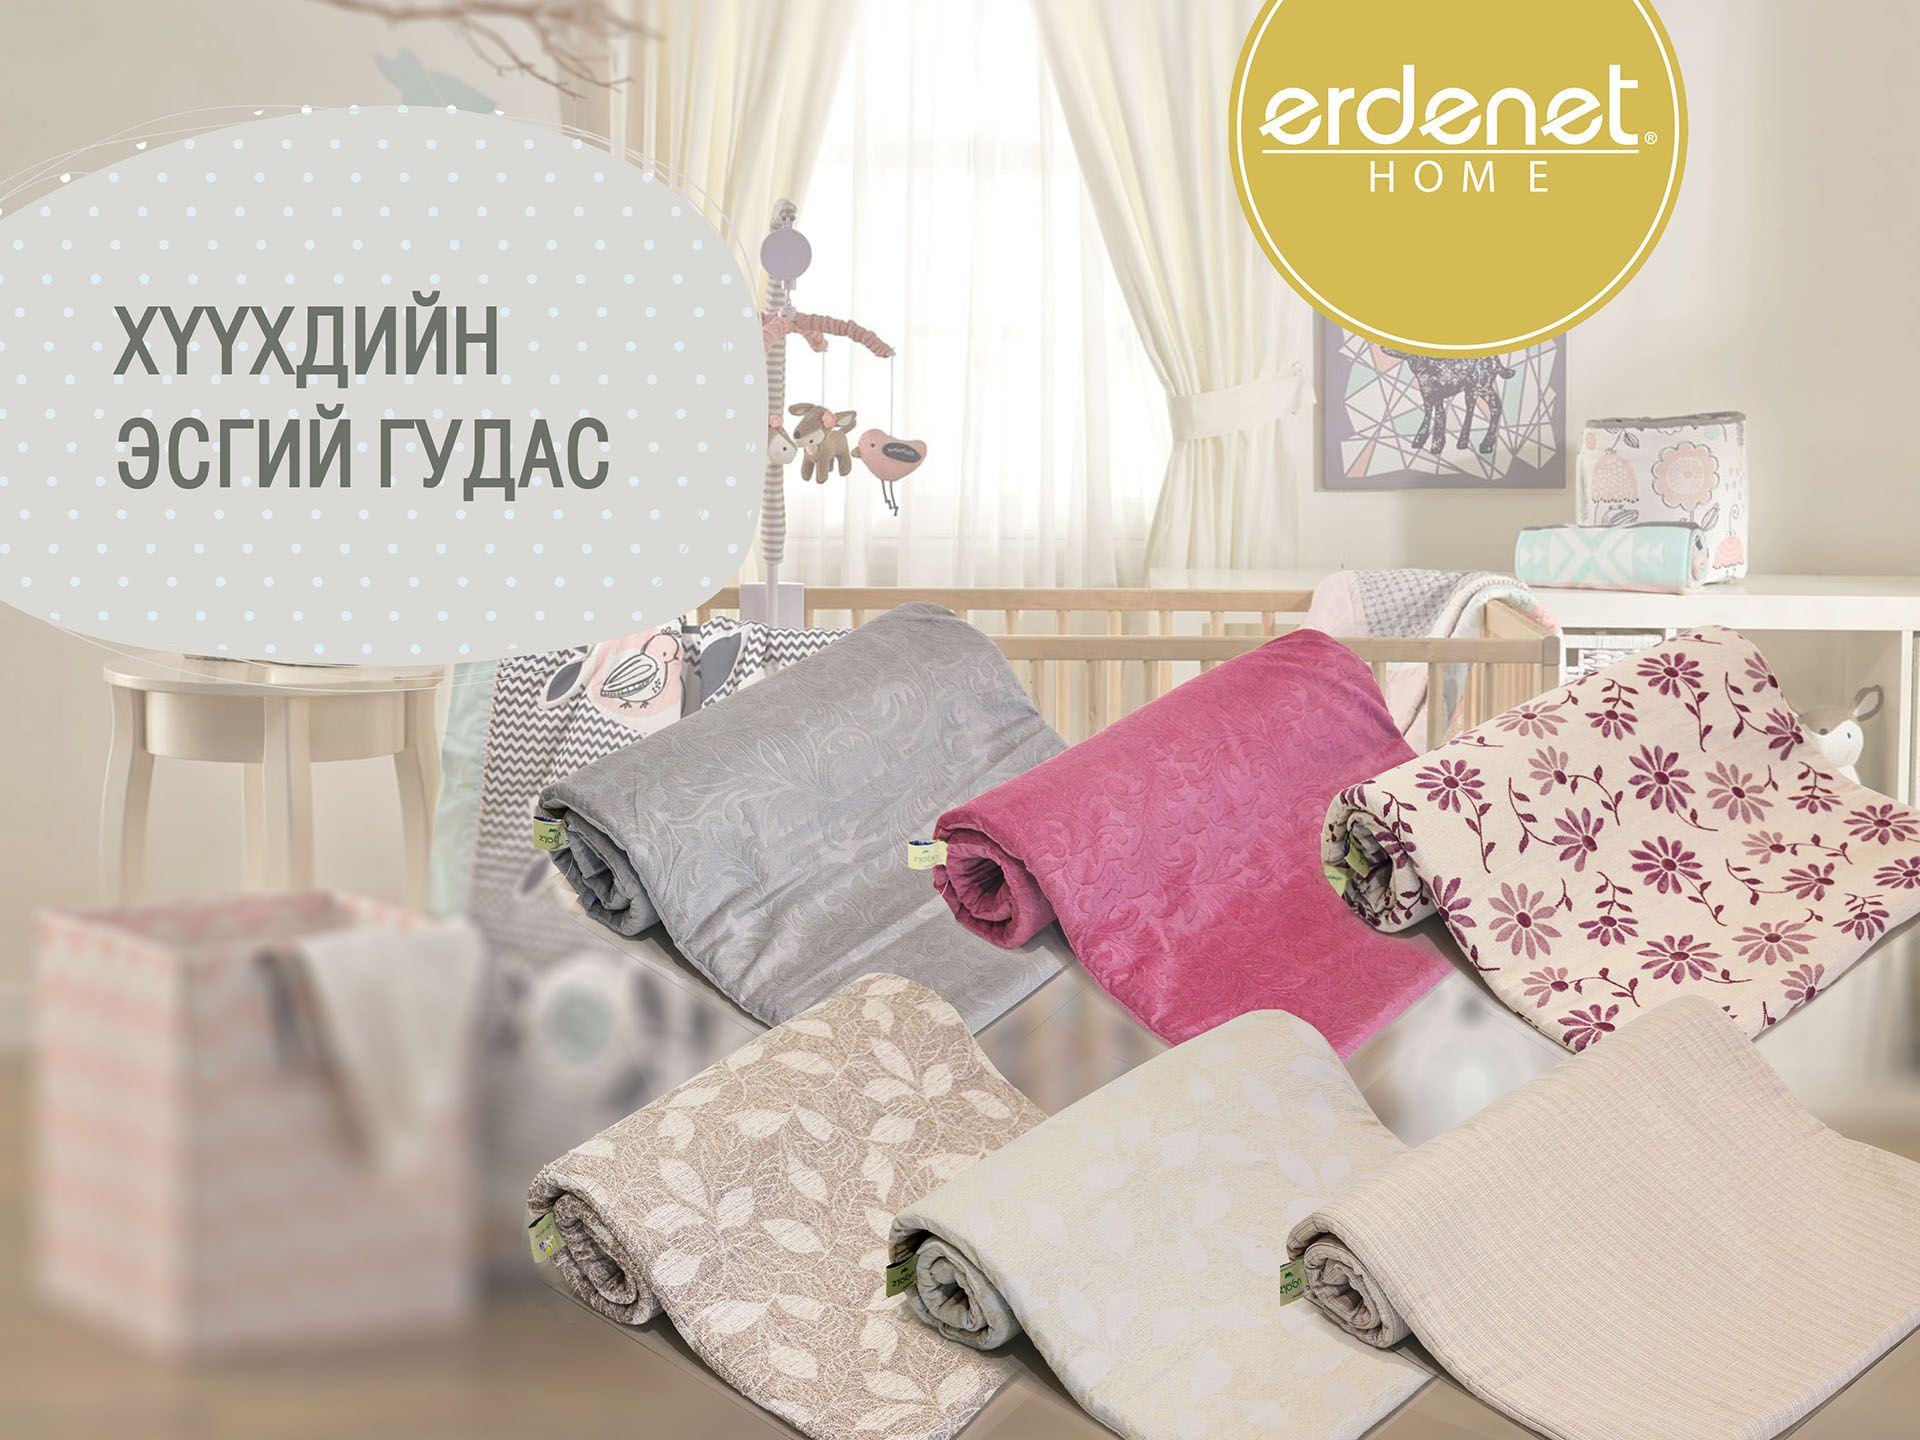 baby mattress mat d o o n d d d d d n d d n size 60x140cm baby products